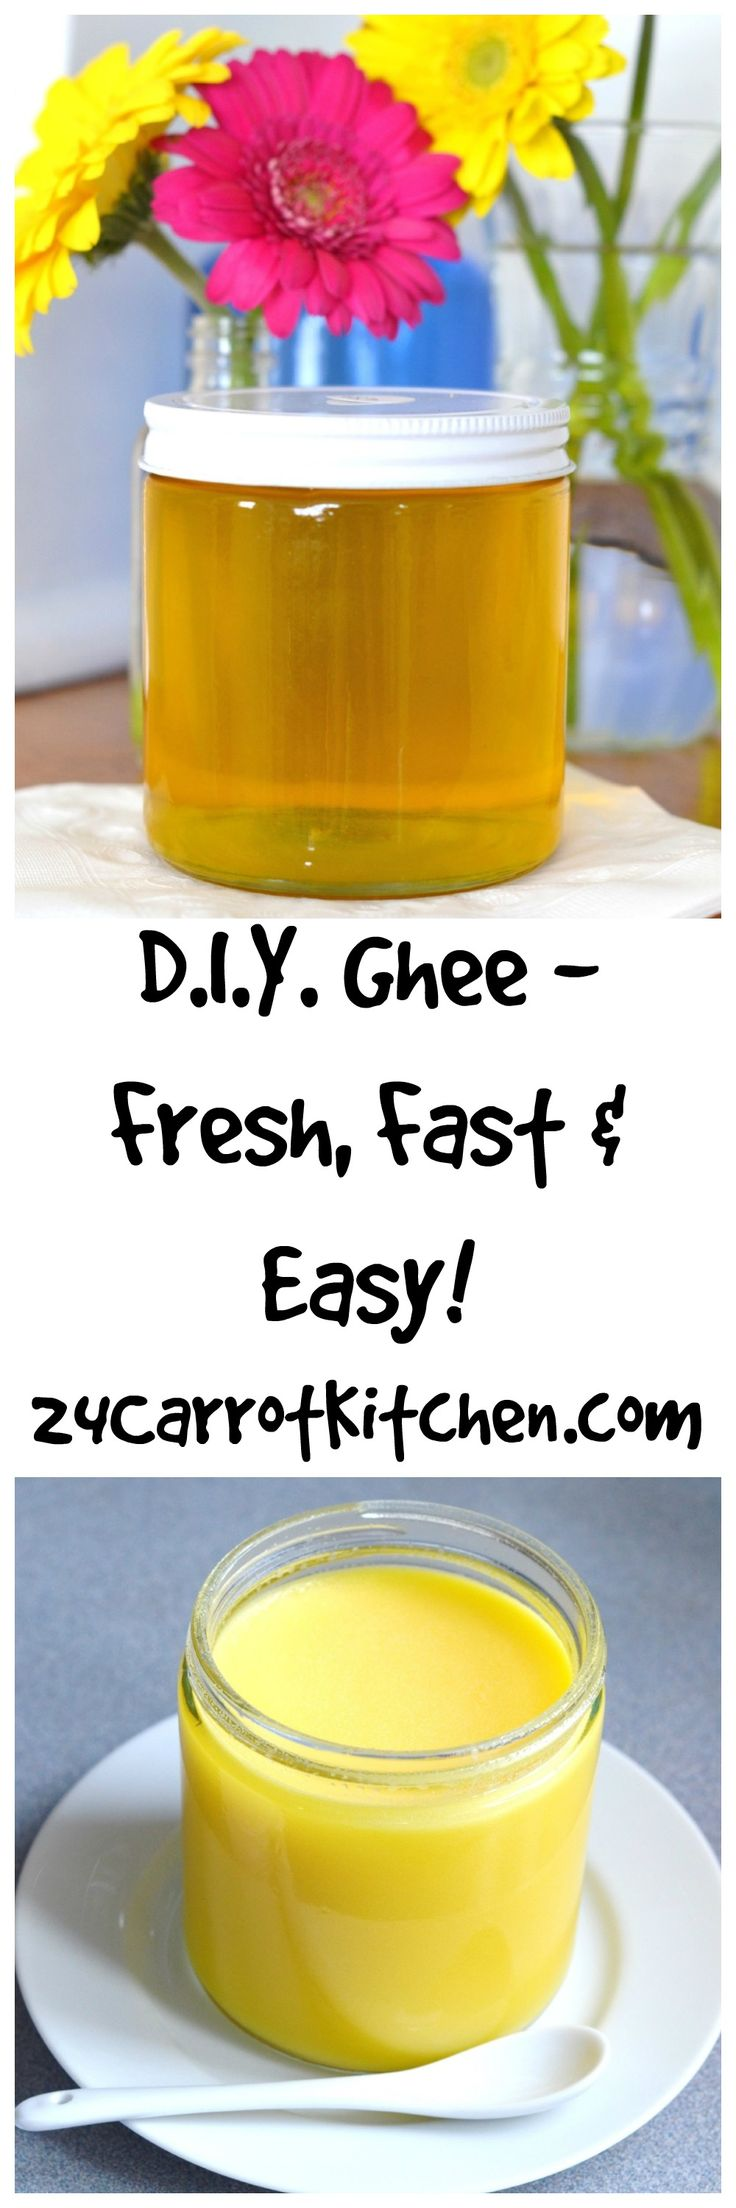 D.I.Y. Ghee, Fast, Fresh and Easy! This tutorial will have you making the most delicious, creamy GHEE (clarified butter) in no time!